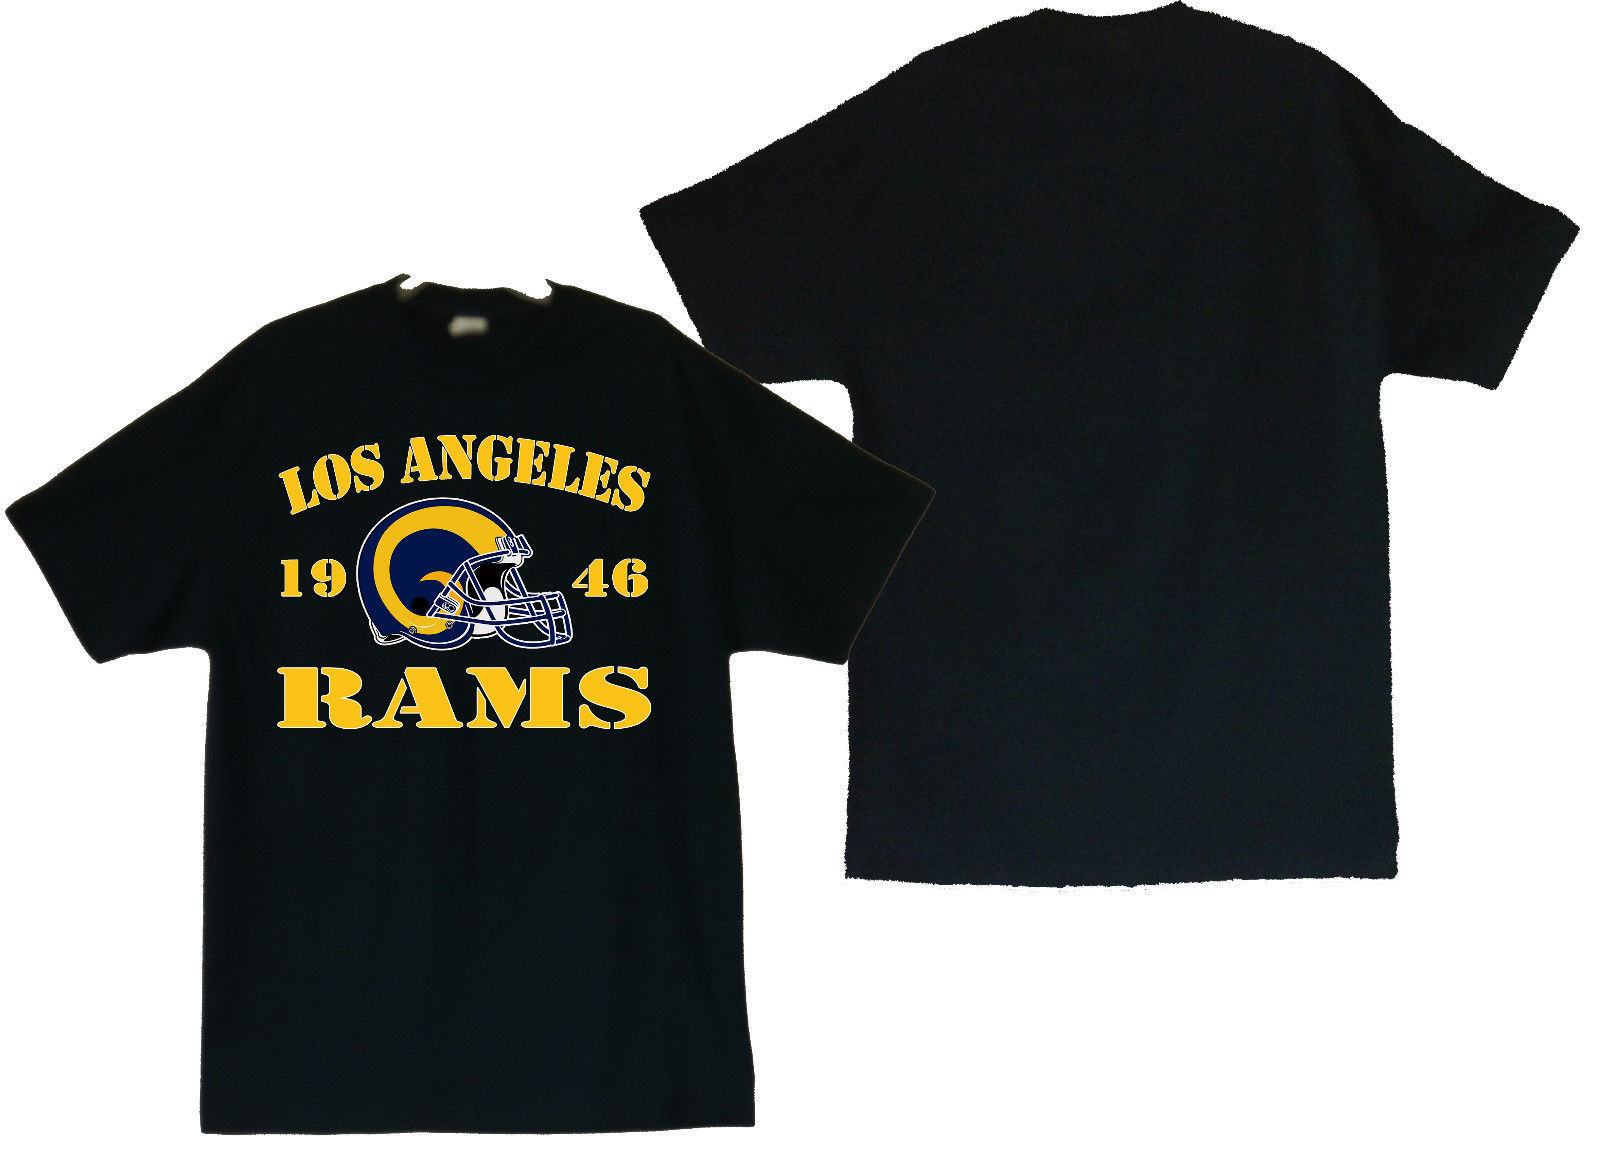 Primary image for Los Angeles Rams 1946 Men's Black T-Shirt Sizes (S thru 4XL)